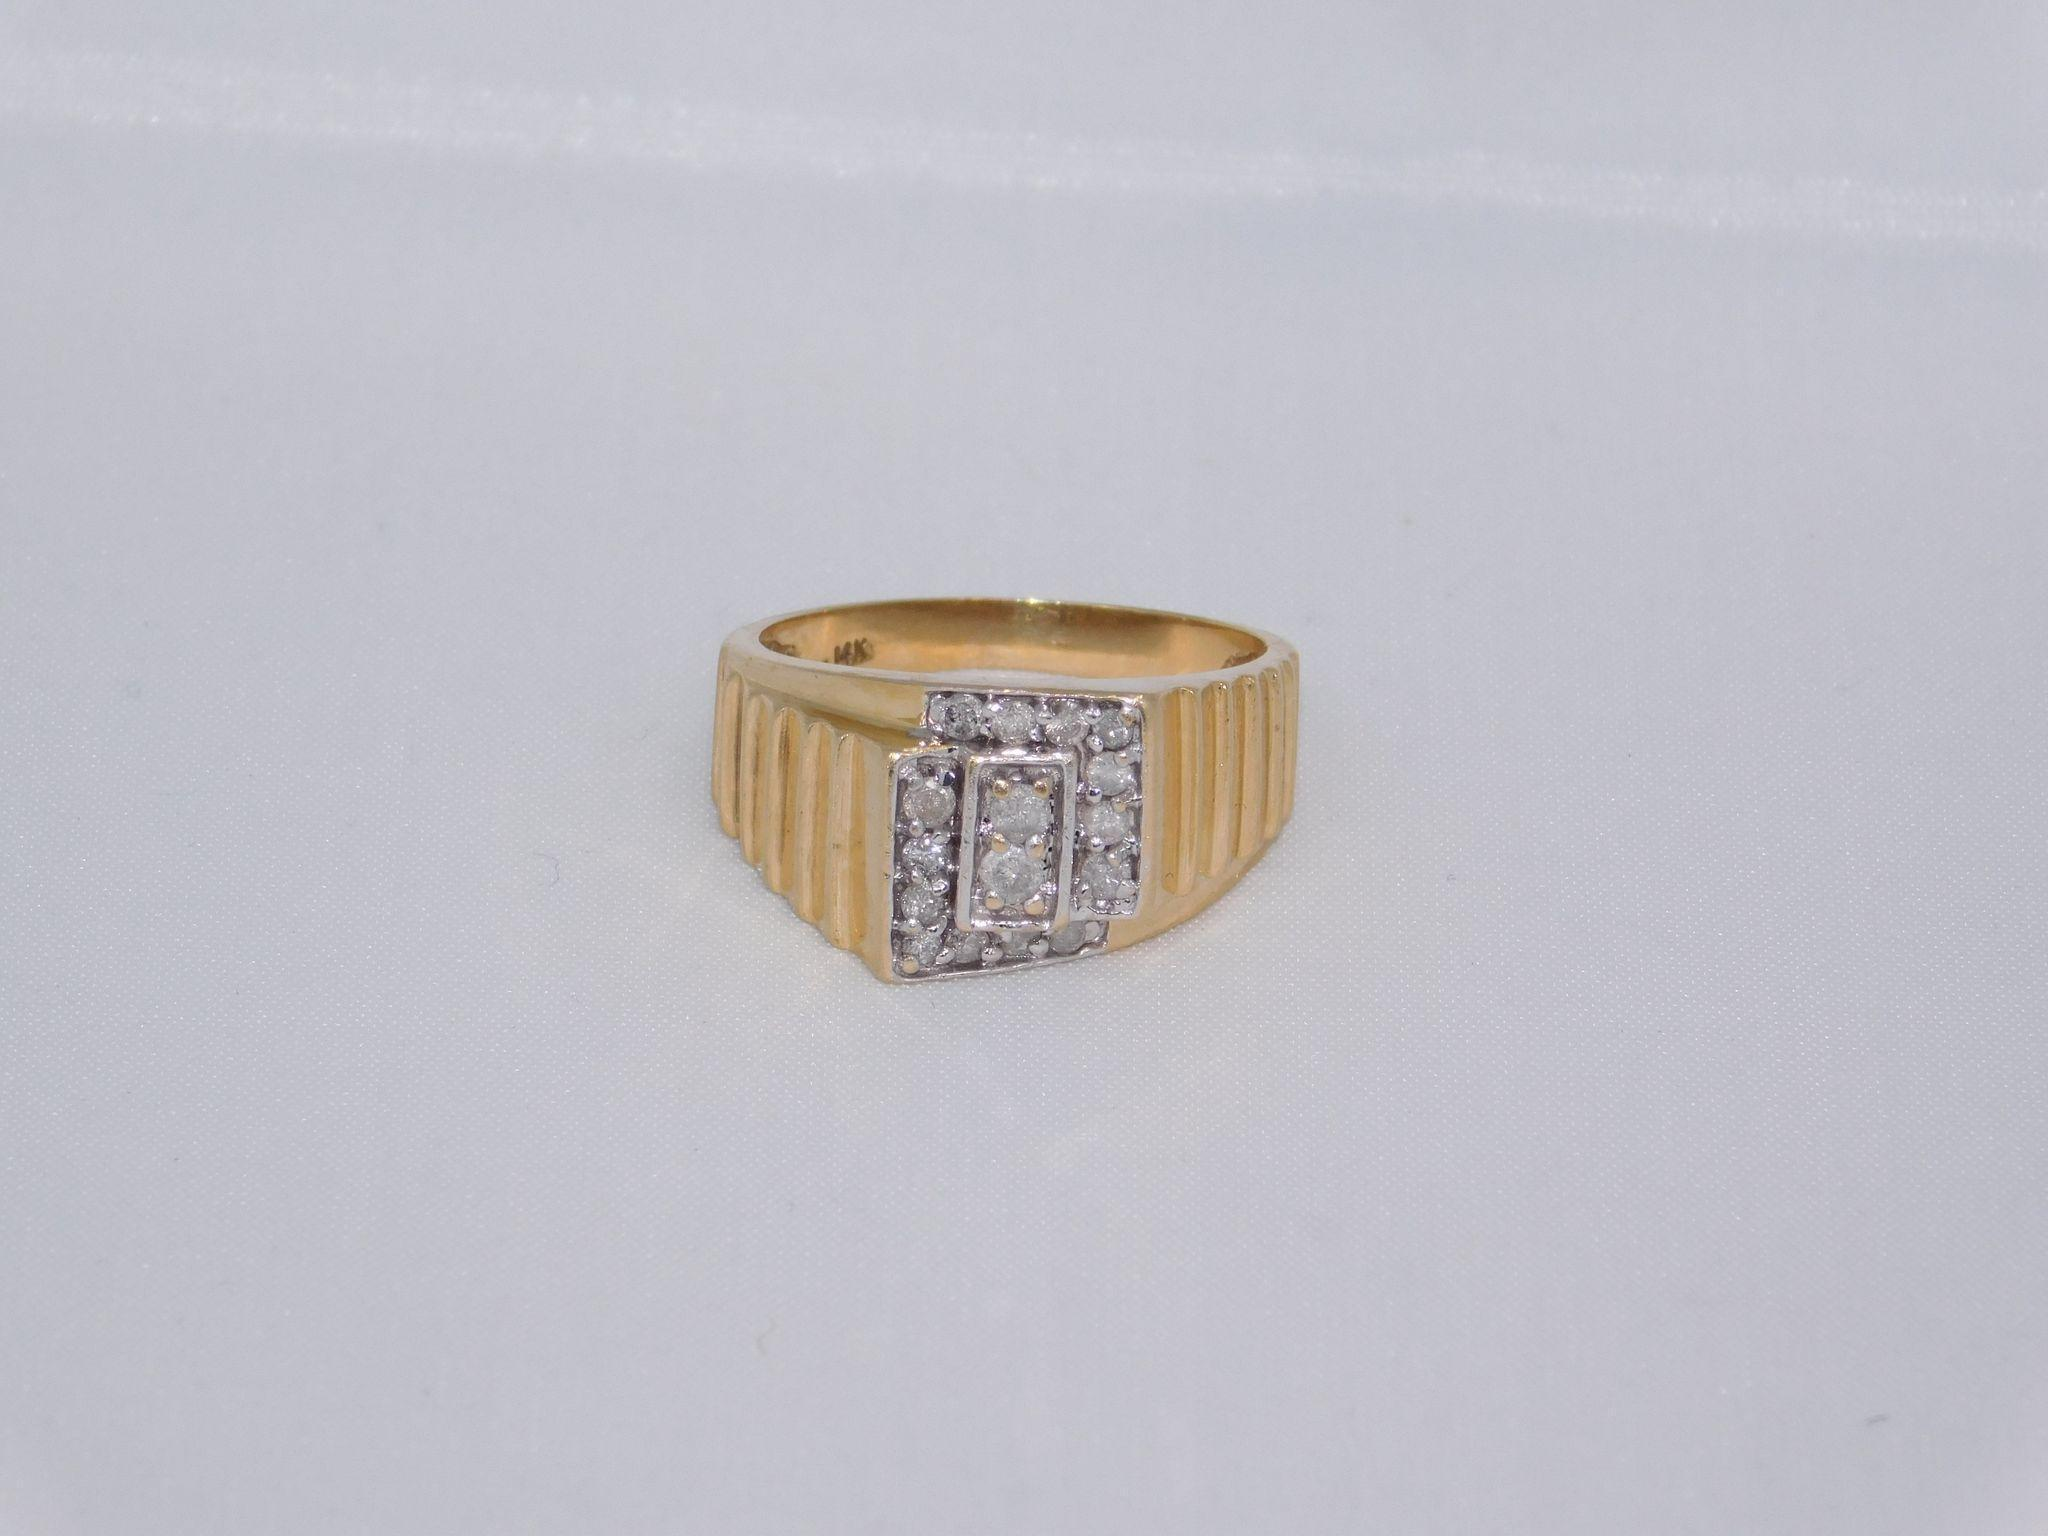 Man s Diamond 14 Karat Gold Ring from susieantiques on Ruby Lane